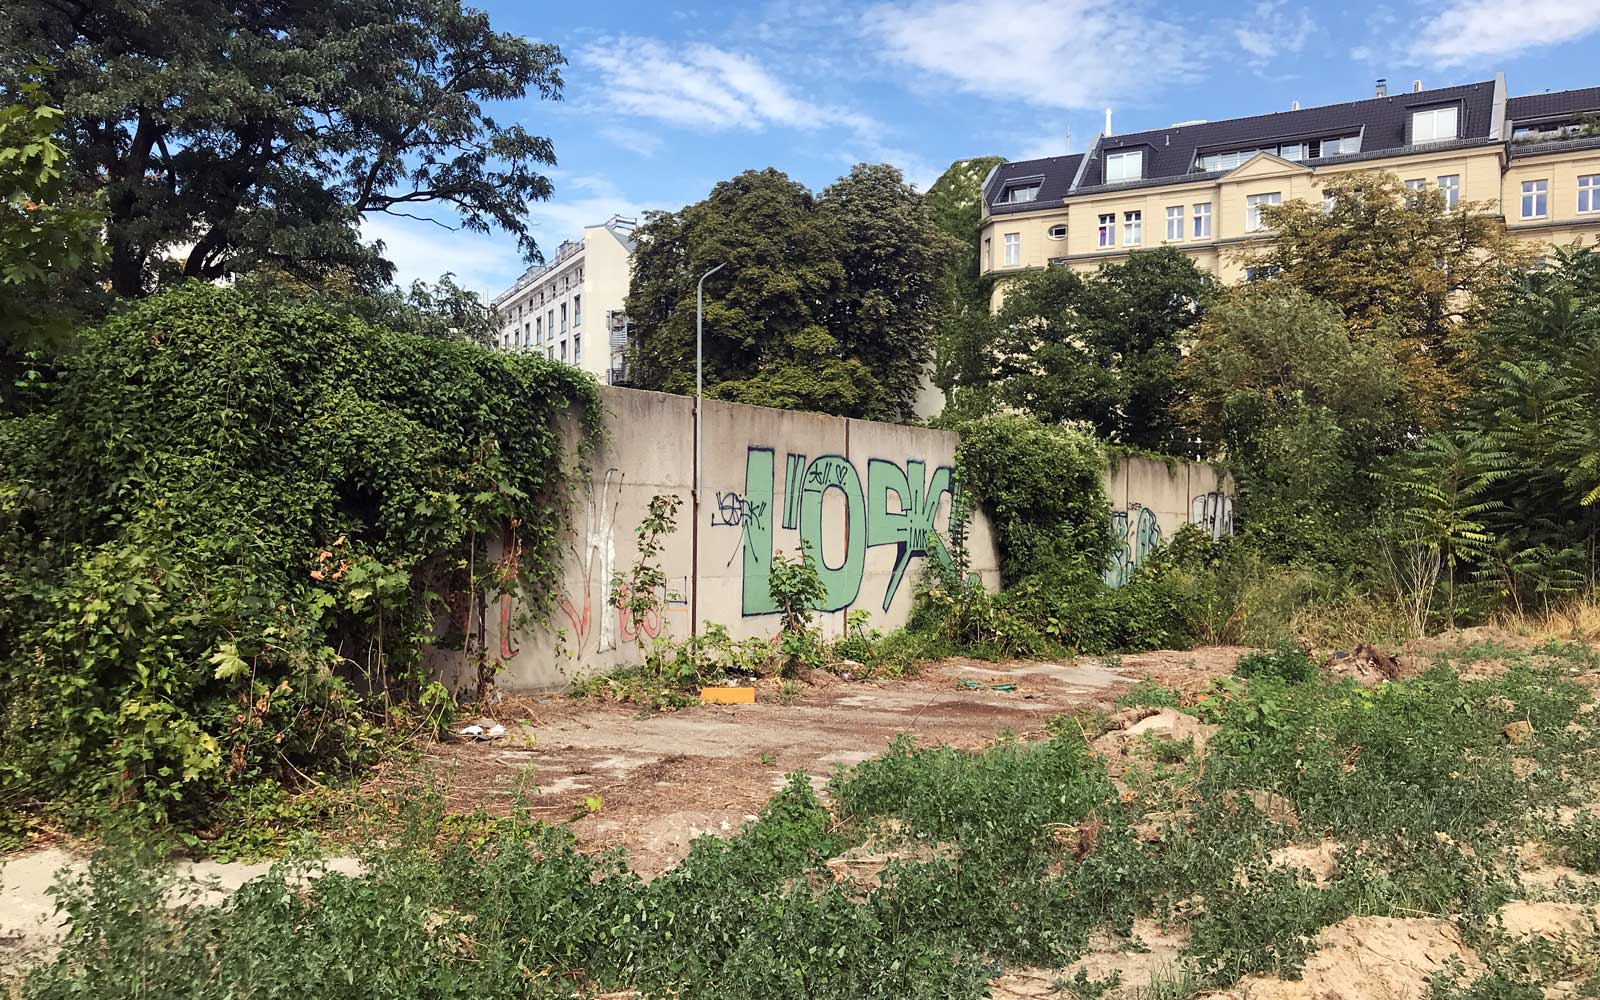 A Walking Tour Discovered a Secret Section of the Berlin Wall 29 Years After Its Fall